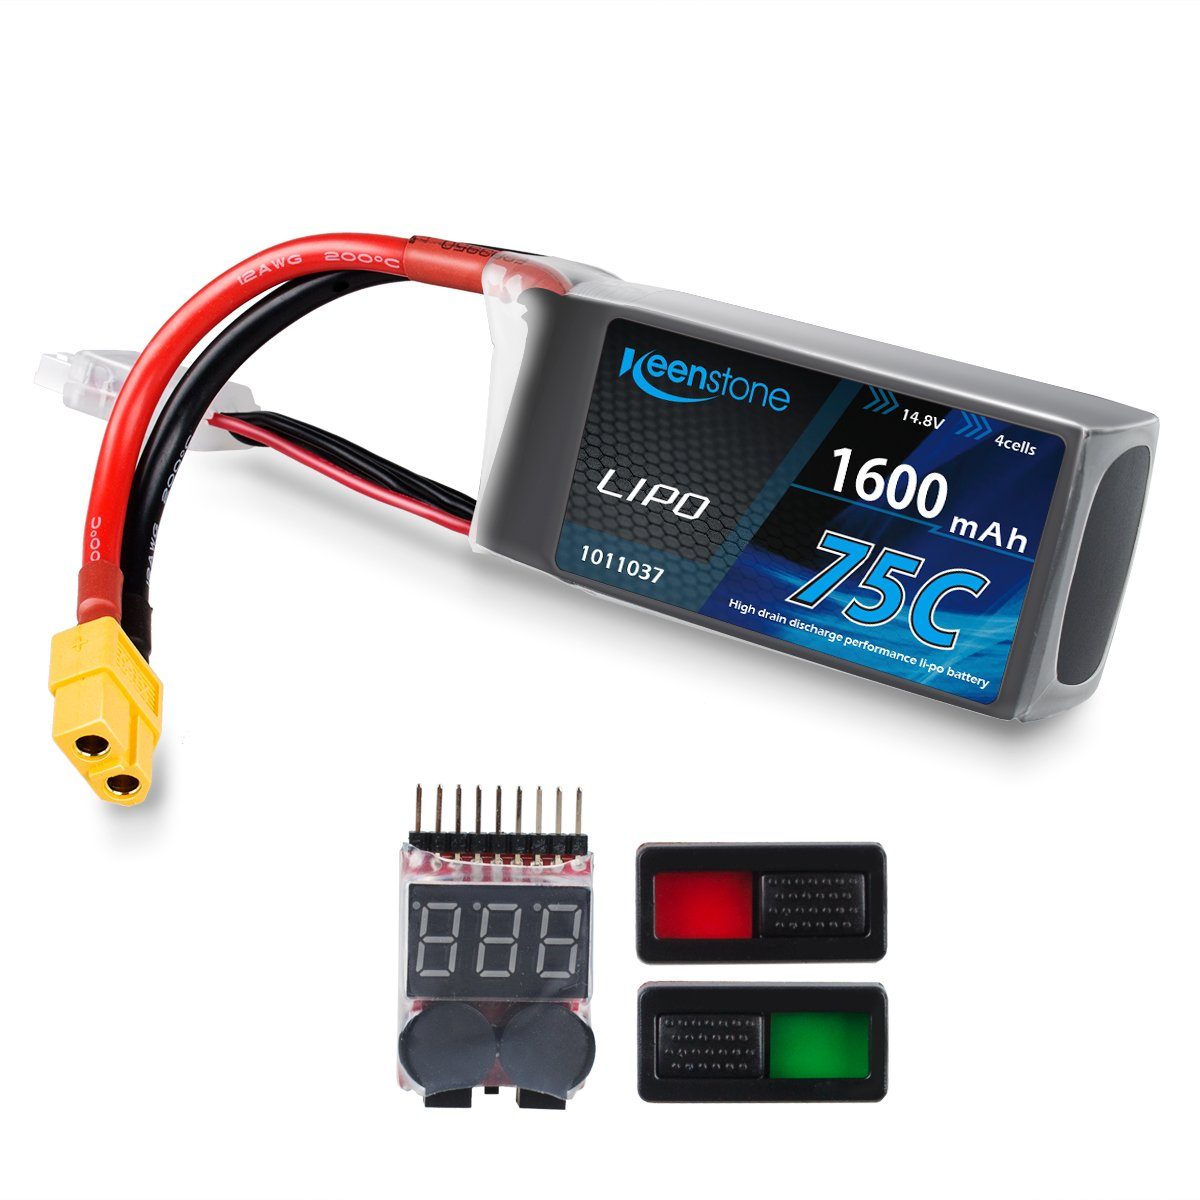 Keenstone LiPo Battery Pack 1600mAh 75C 4S 14.8V with XT60 Plug w/ Voltage Meter & Battery Power Indicator for RC Boat Heli Airplane UAV Drone FPV